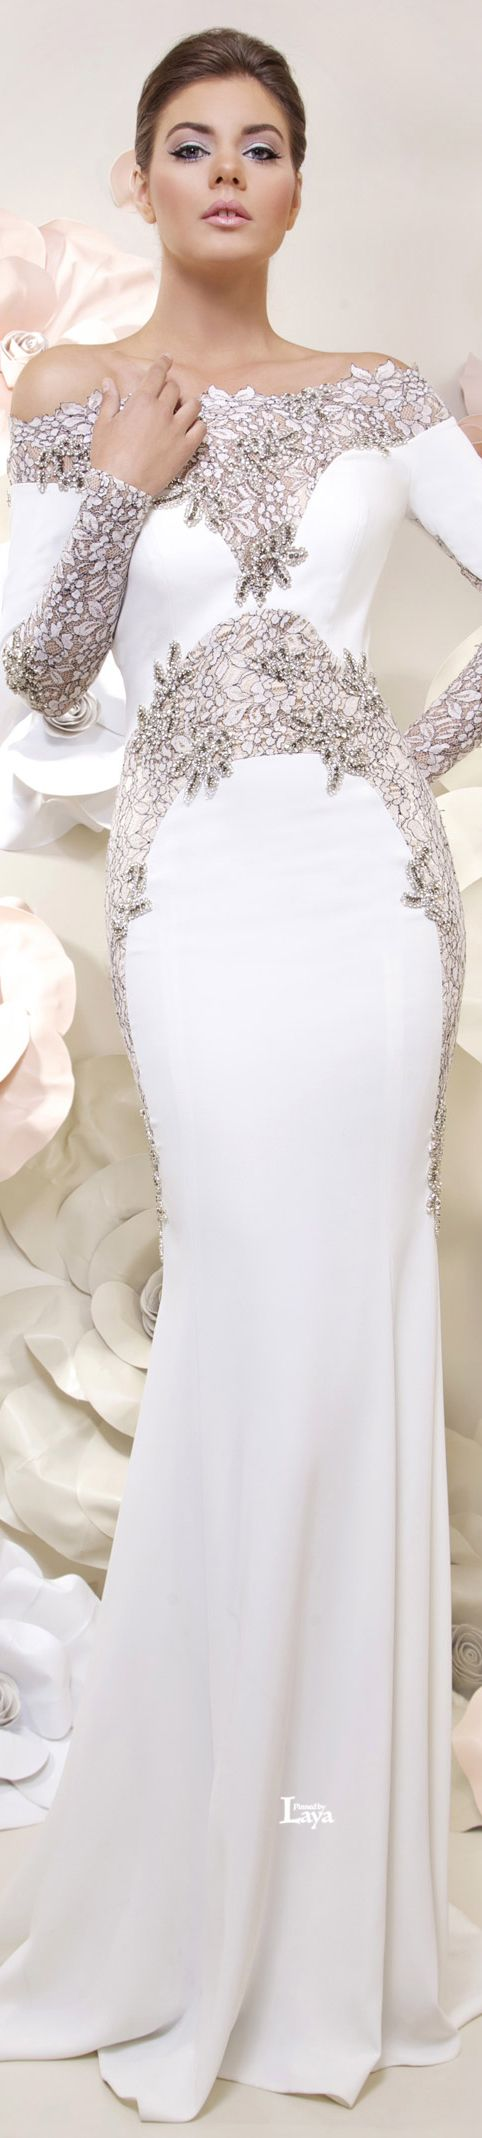 Long sleeve cocktail dress for wedding  Tarek Sinno  Spring Formal White Gown w Silver Embellishments